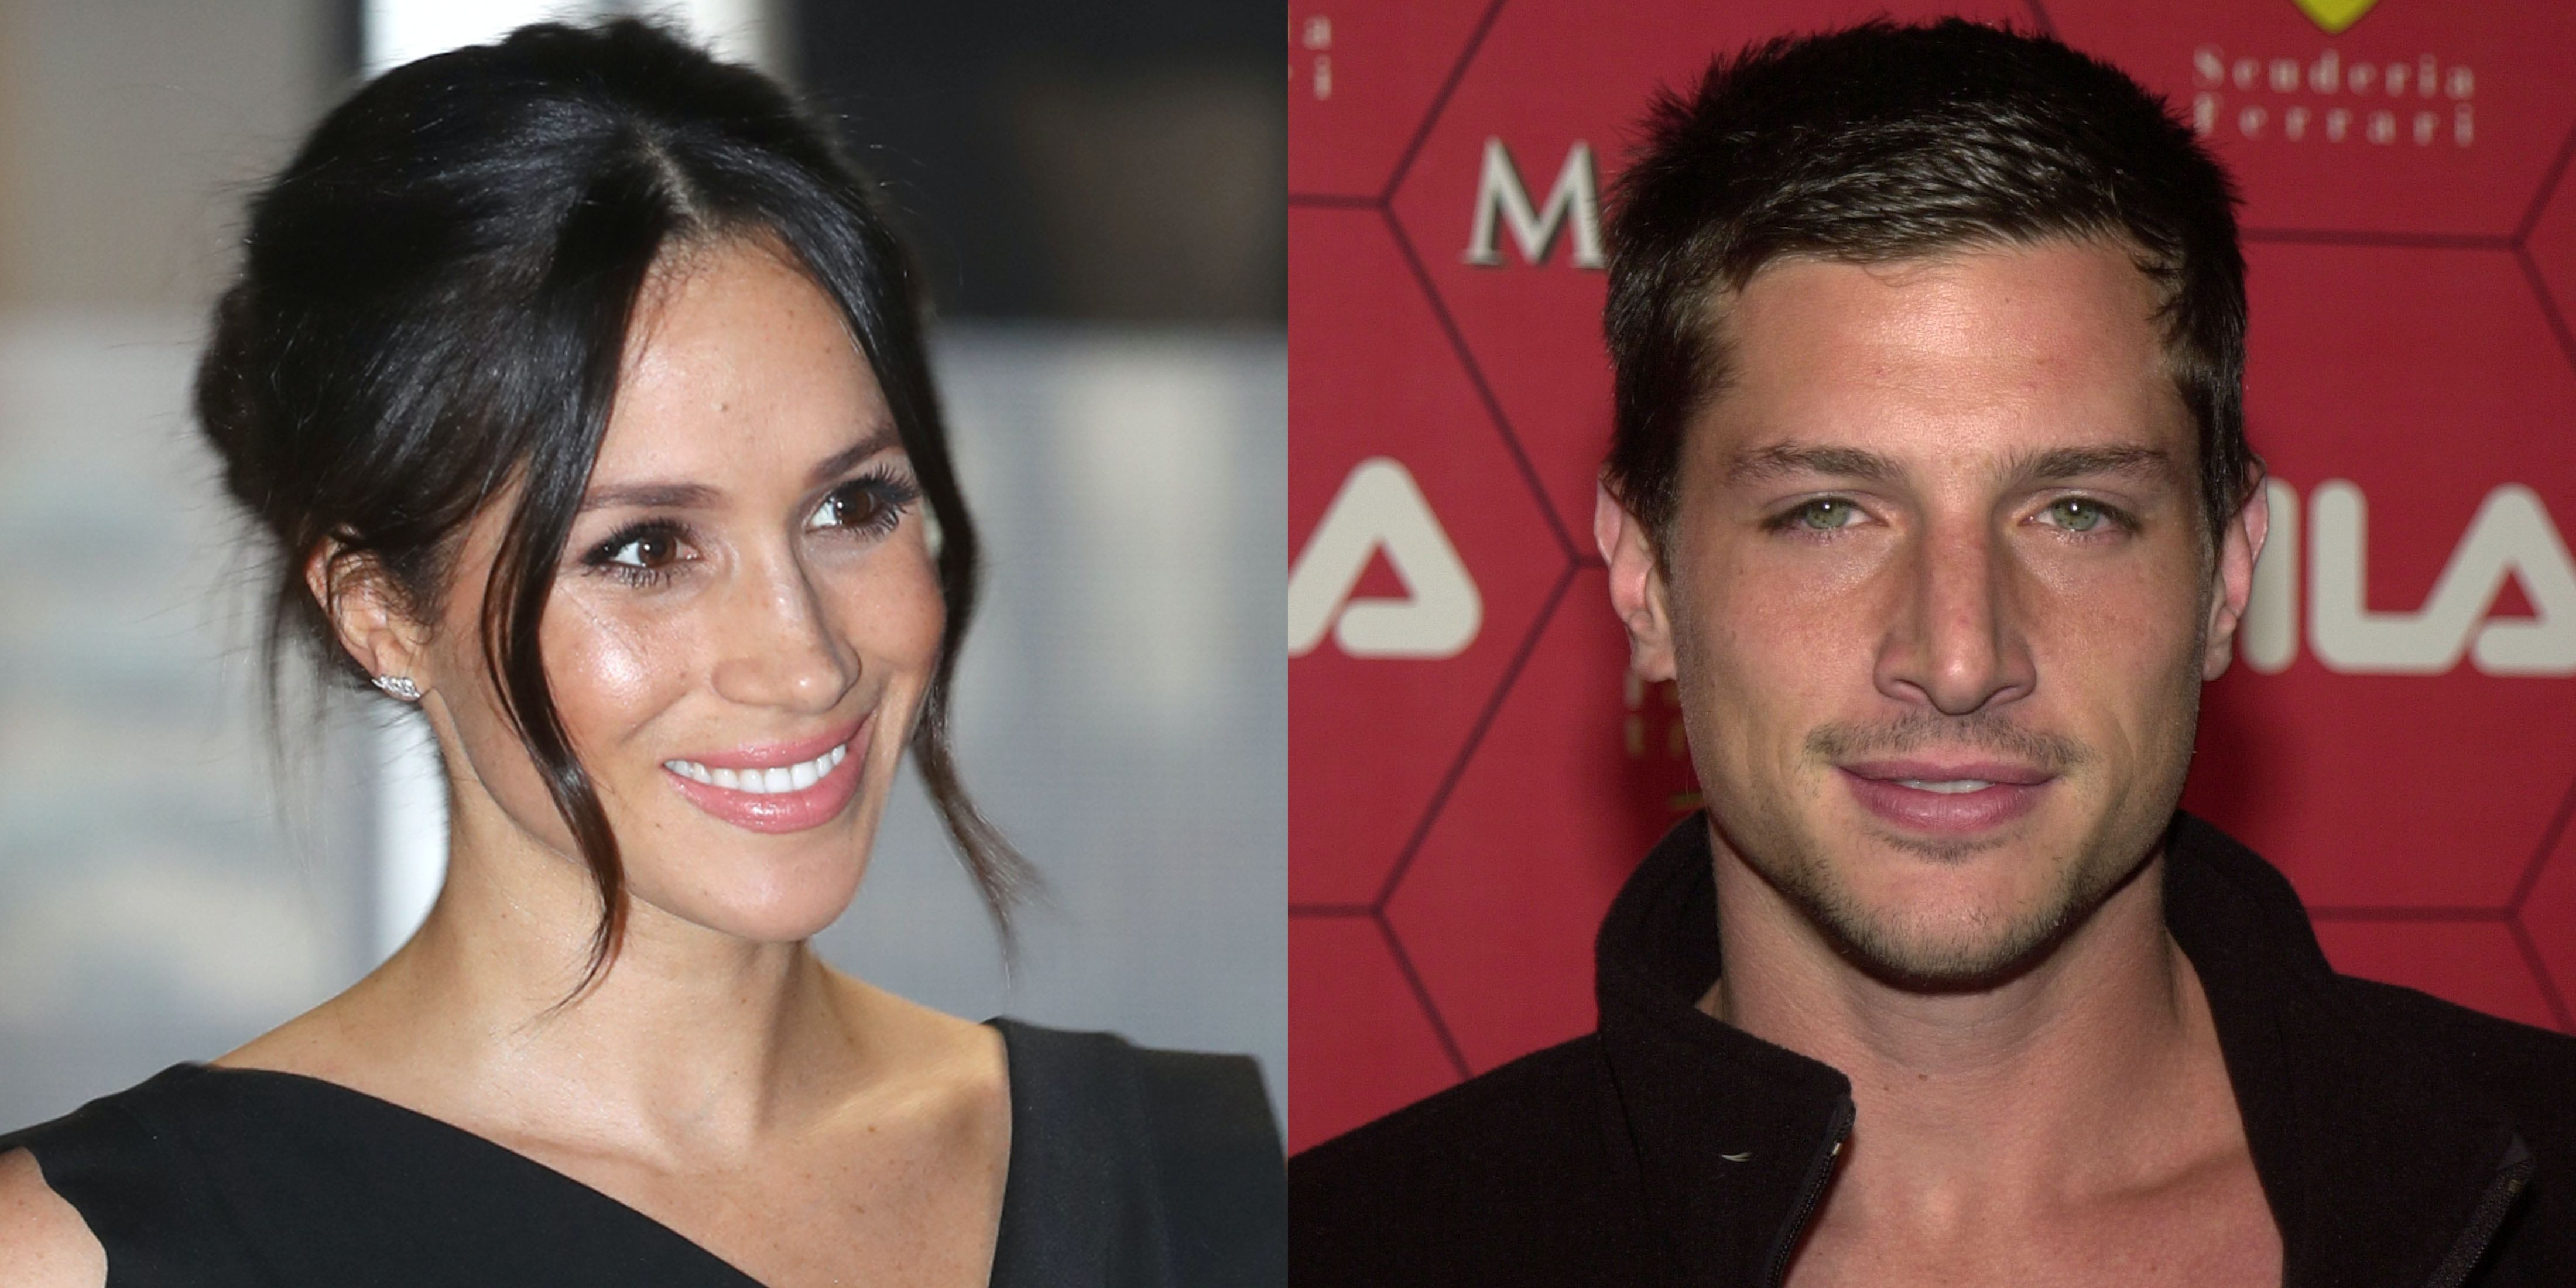 Meghan Markle's Costar Simon Rex Offered $70,000 Bribe To Say He Dated The Duchess